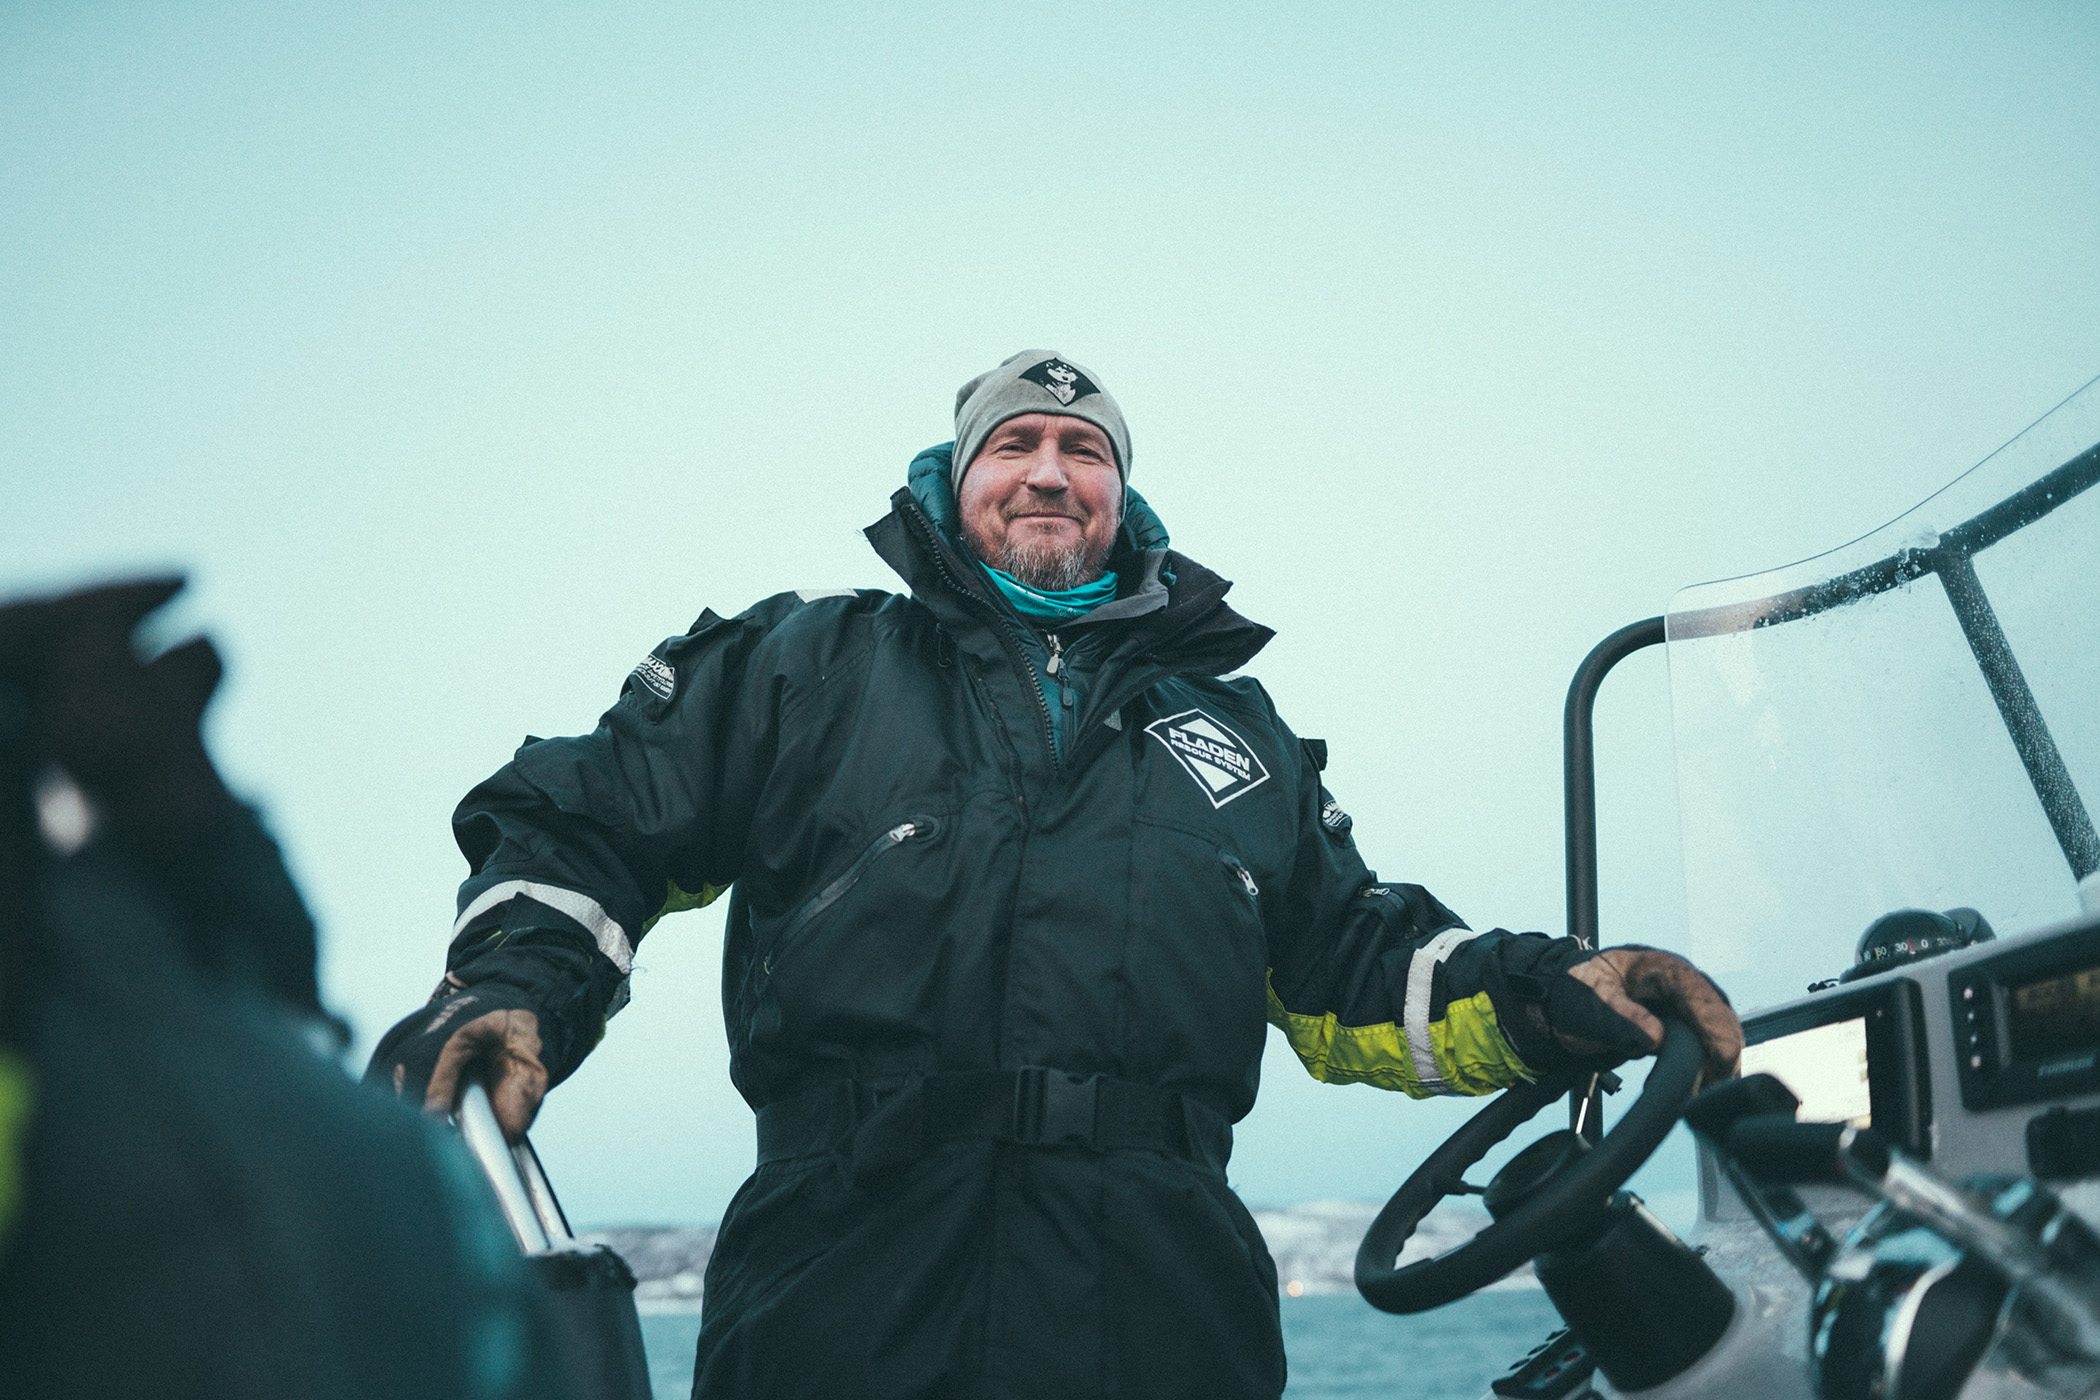 RIB boat, Per Thore, Arctic Adventure Tours